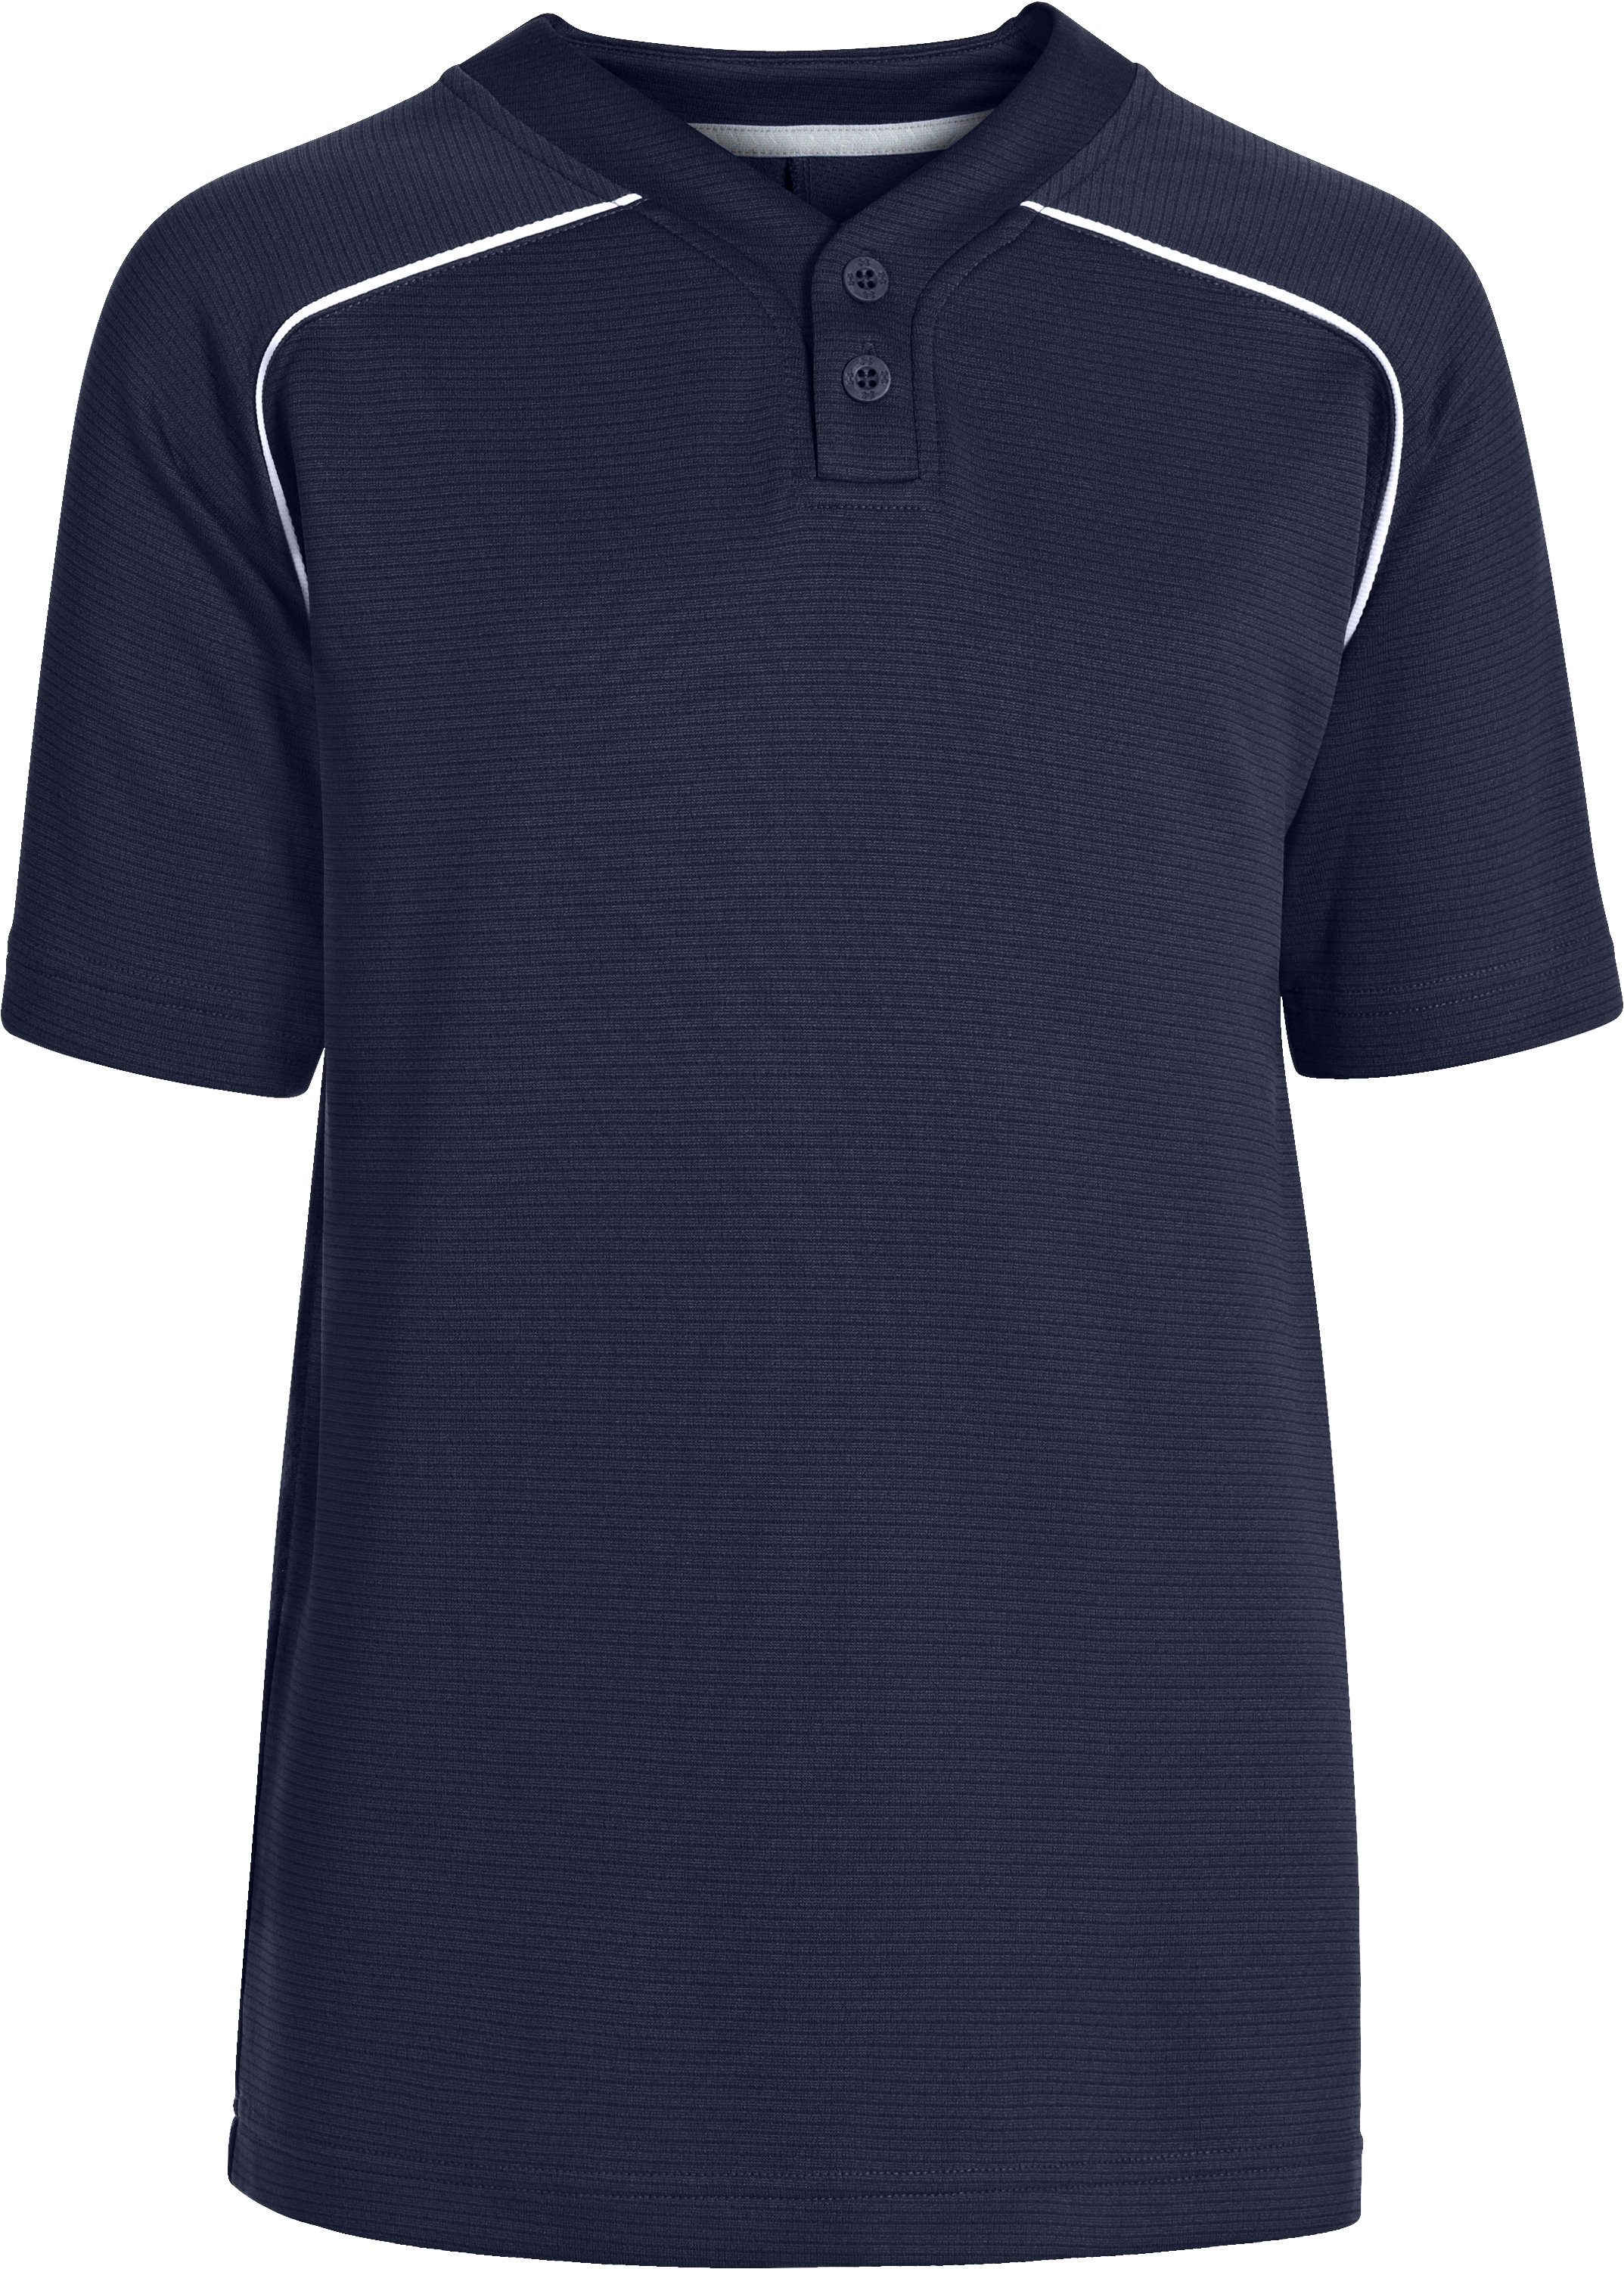 Boys' UA Landsdown II Baseball Jersey, Midnight Navy